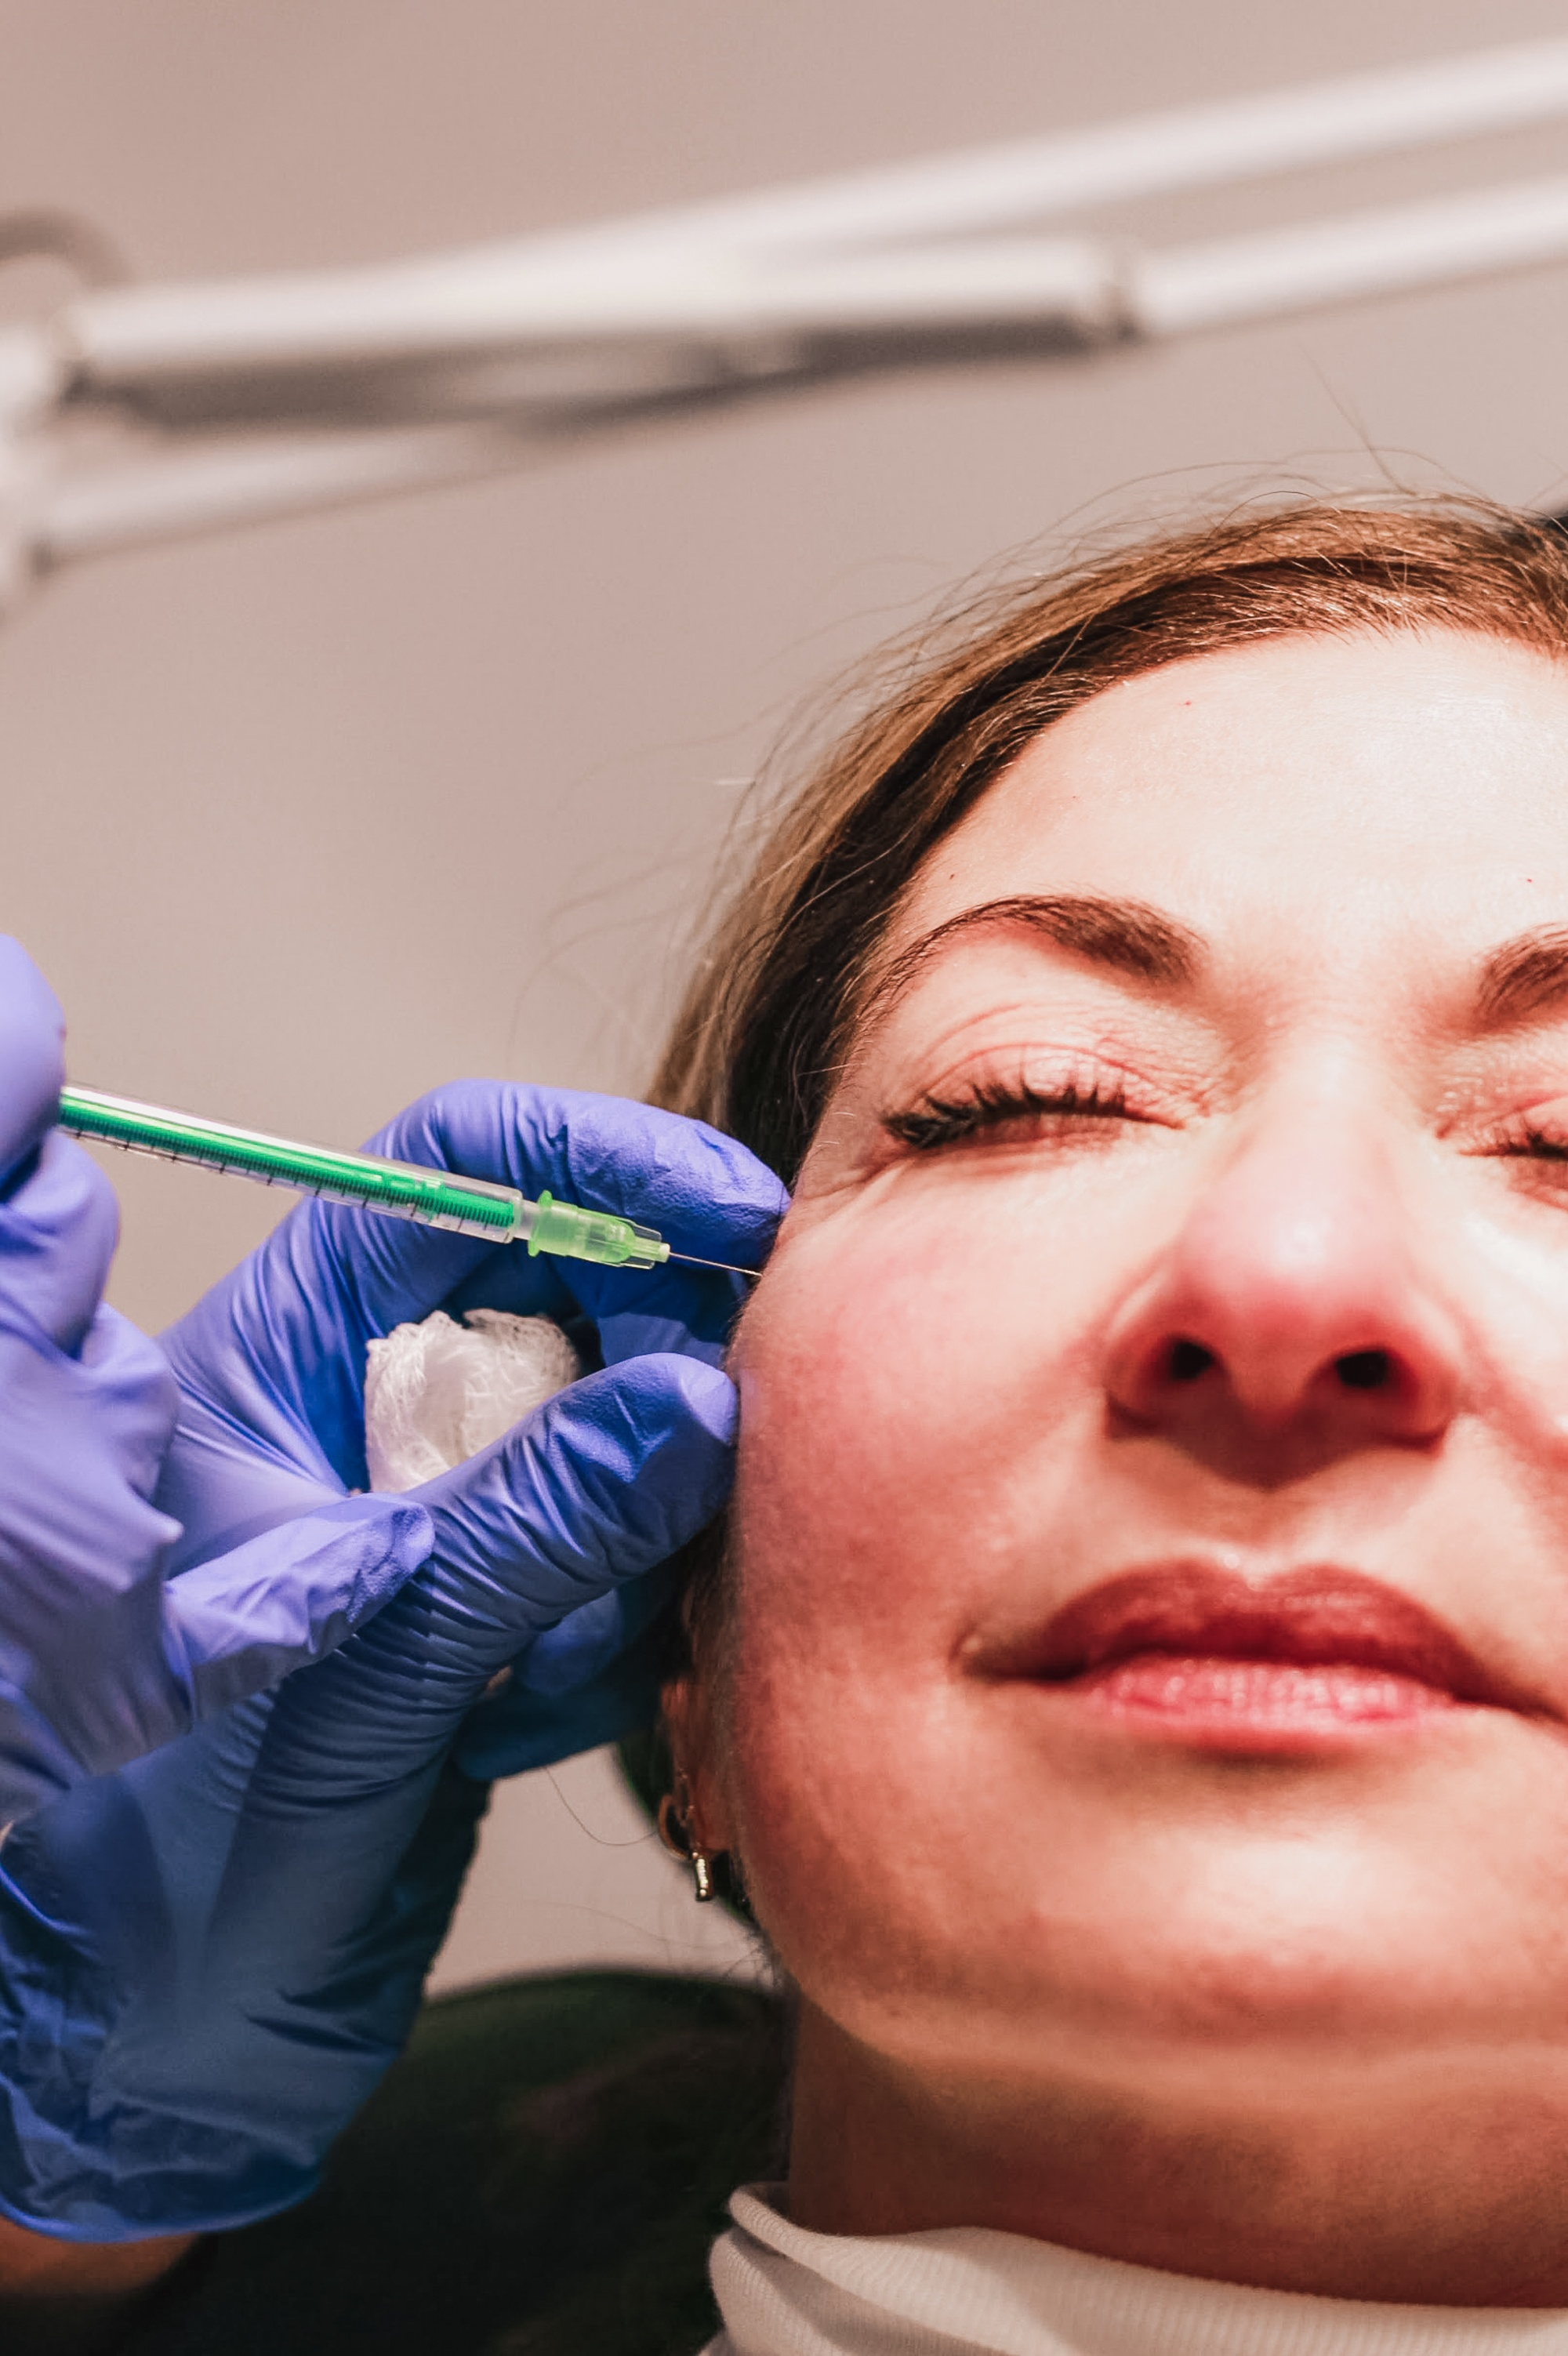 Botox done right Francine getting injection eye area